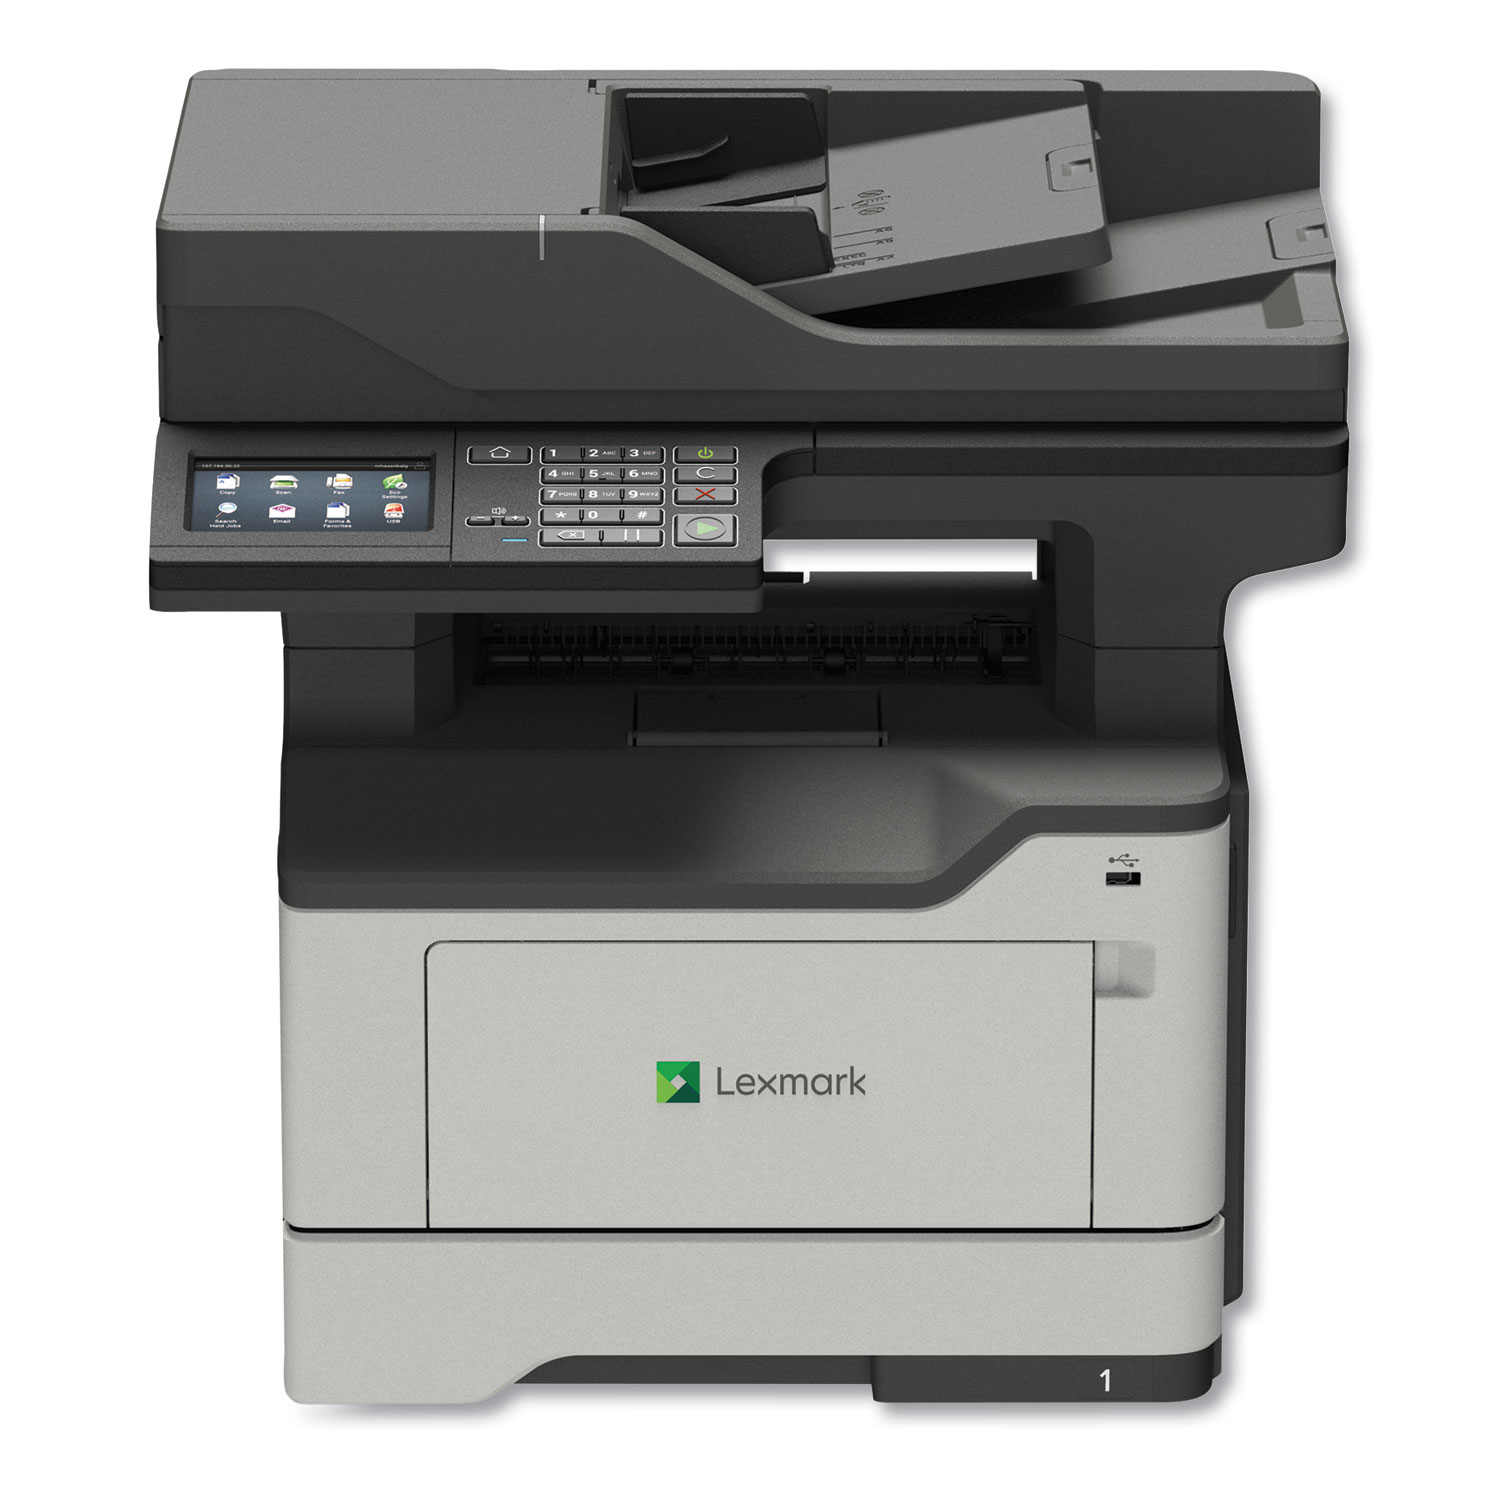 MX522ADHE Printer, Copy/Fax/Print/Scan